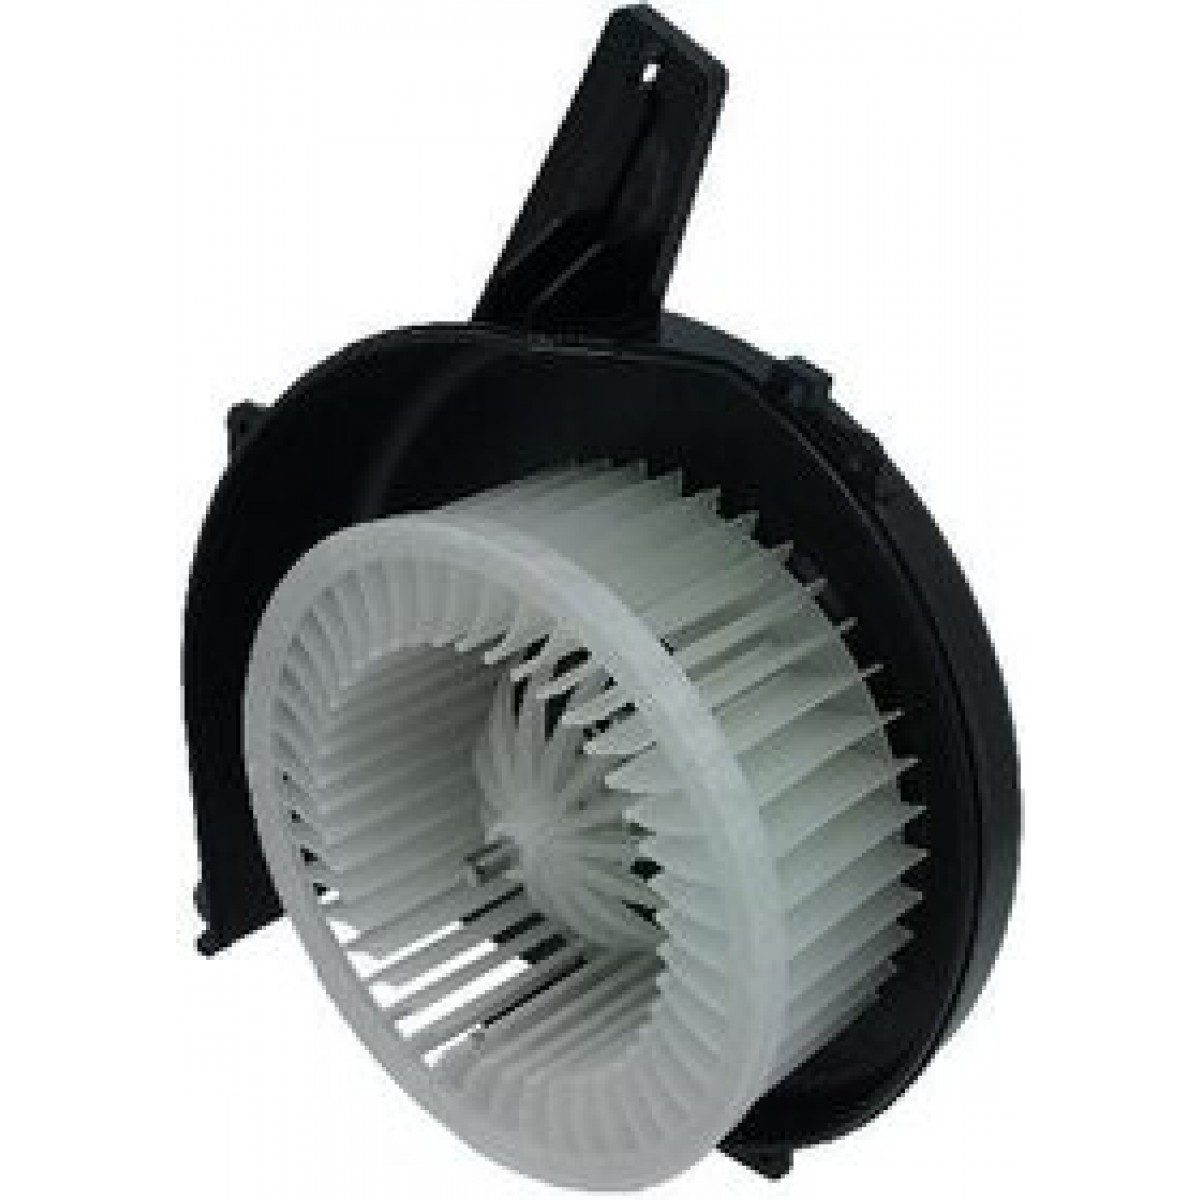 VENTILÁTOR TOPENÍ fabia/fabia2/roomster